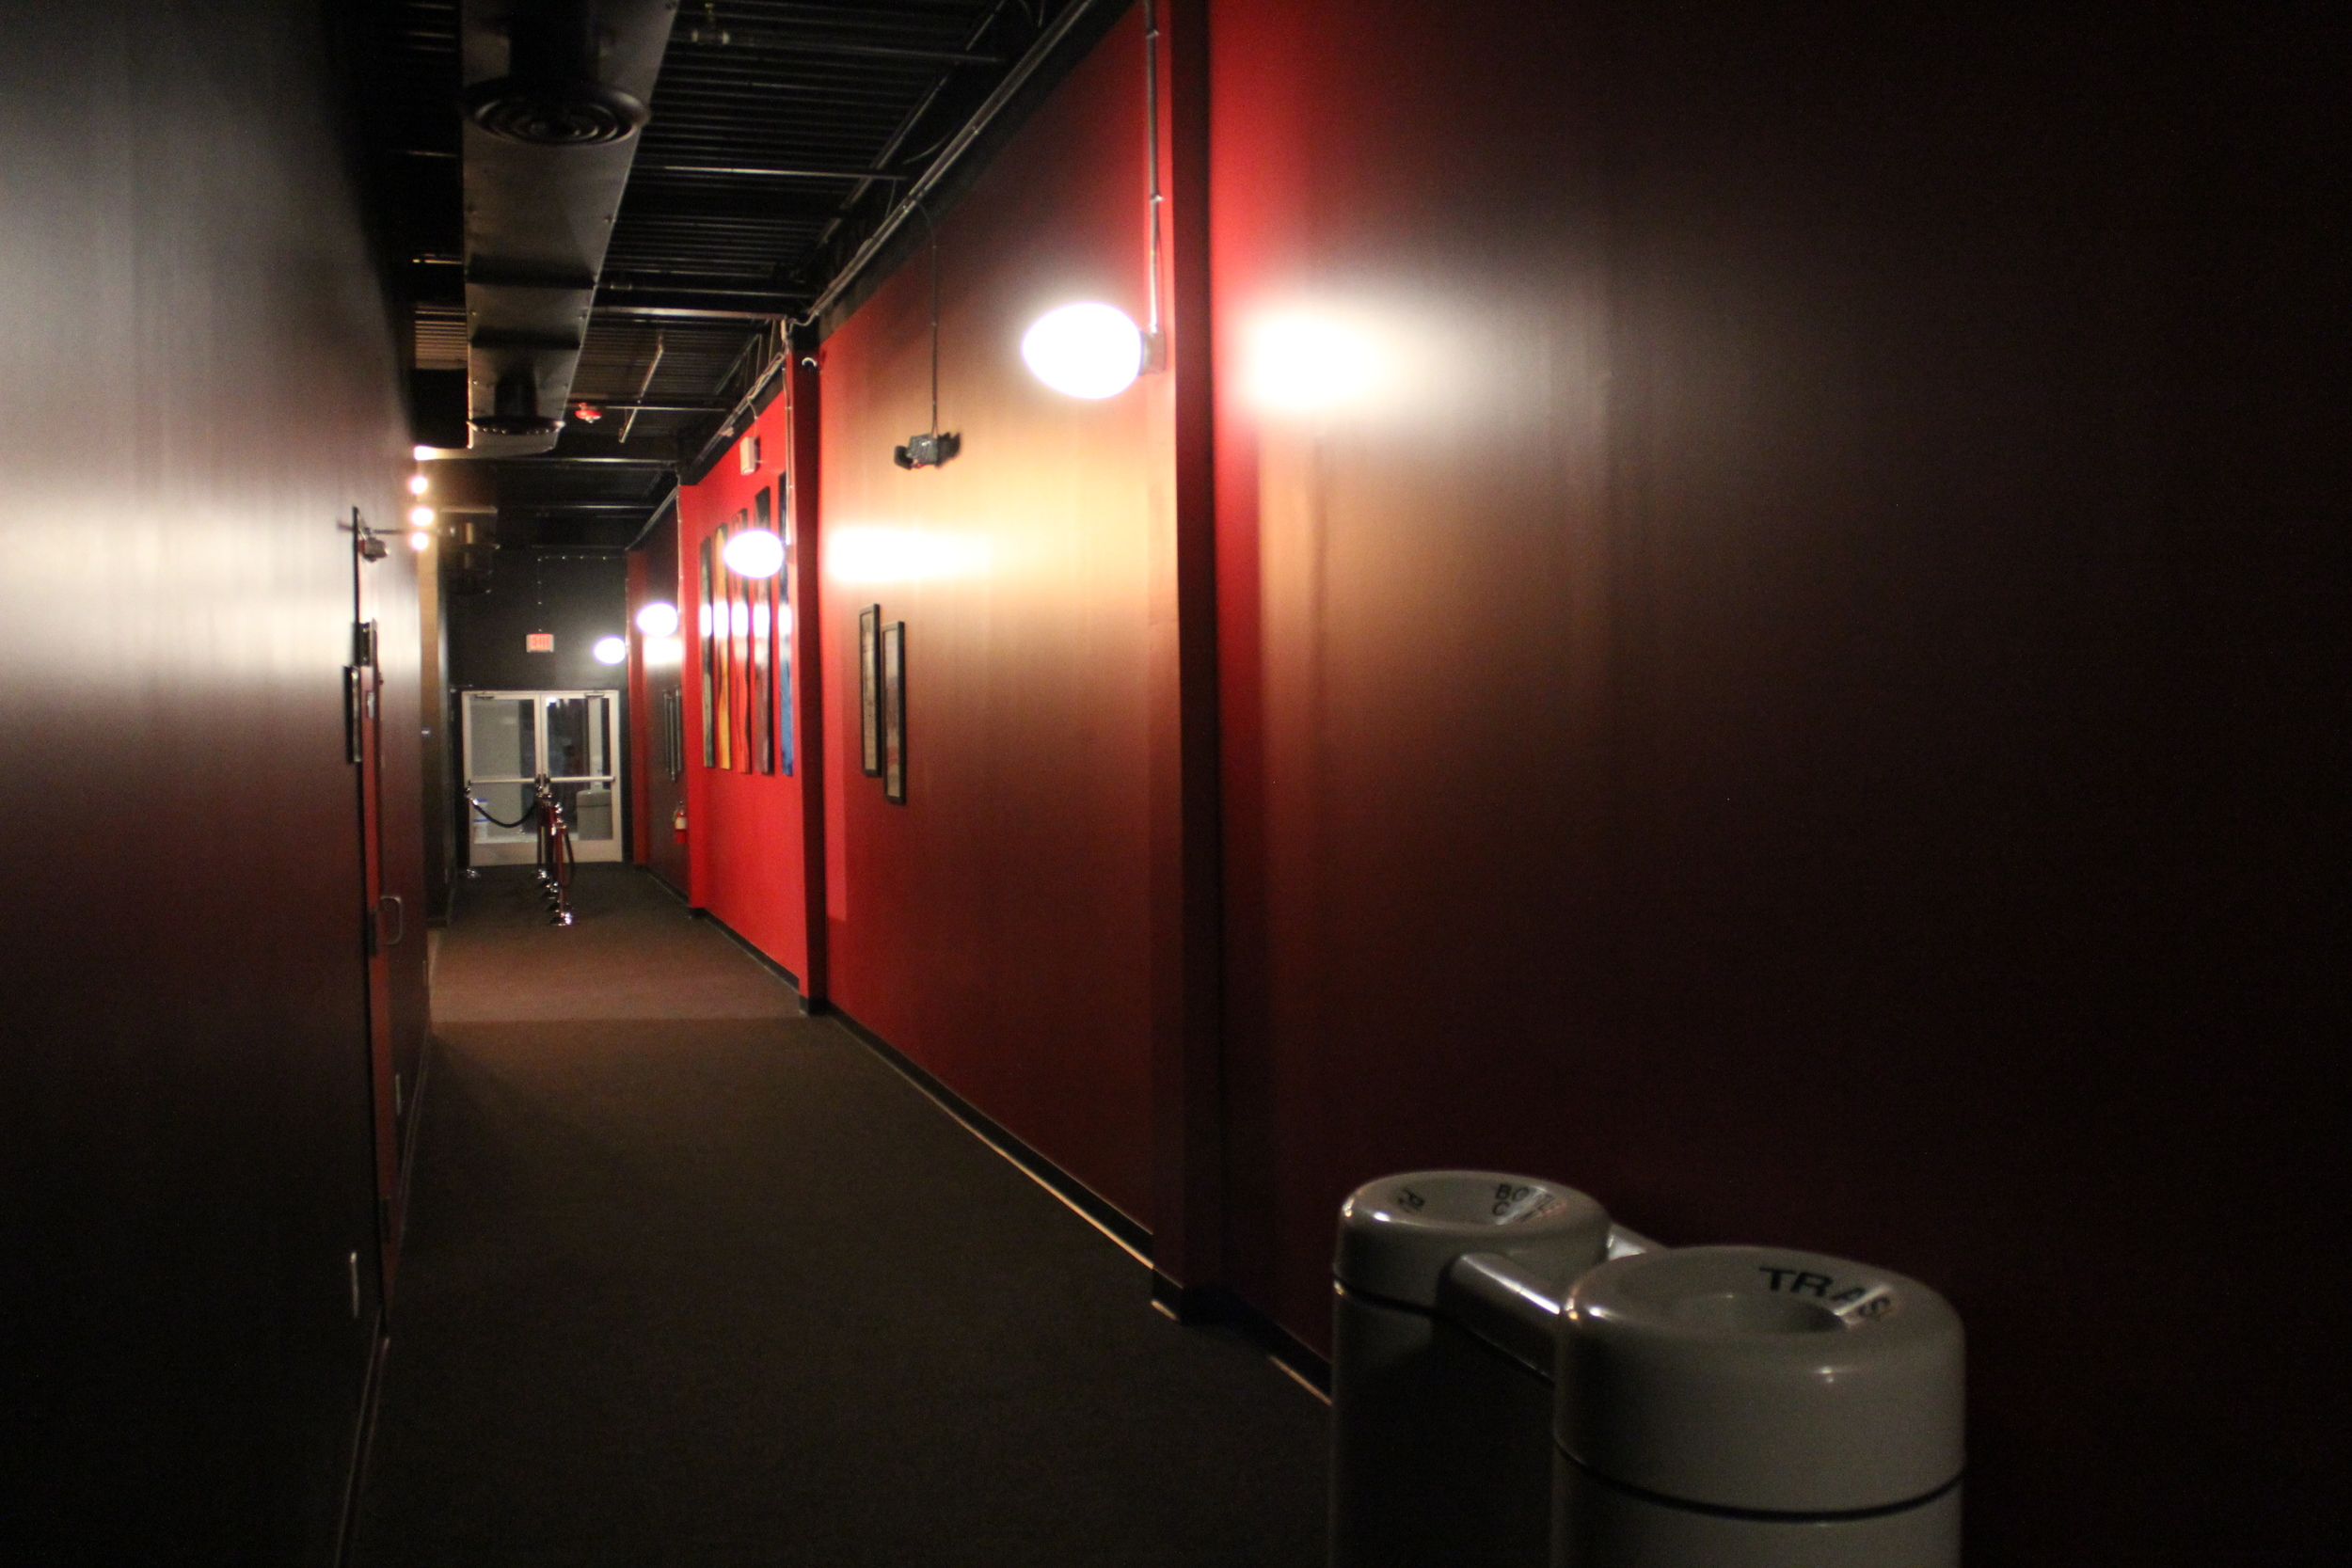 Hallway from screen 3